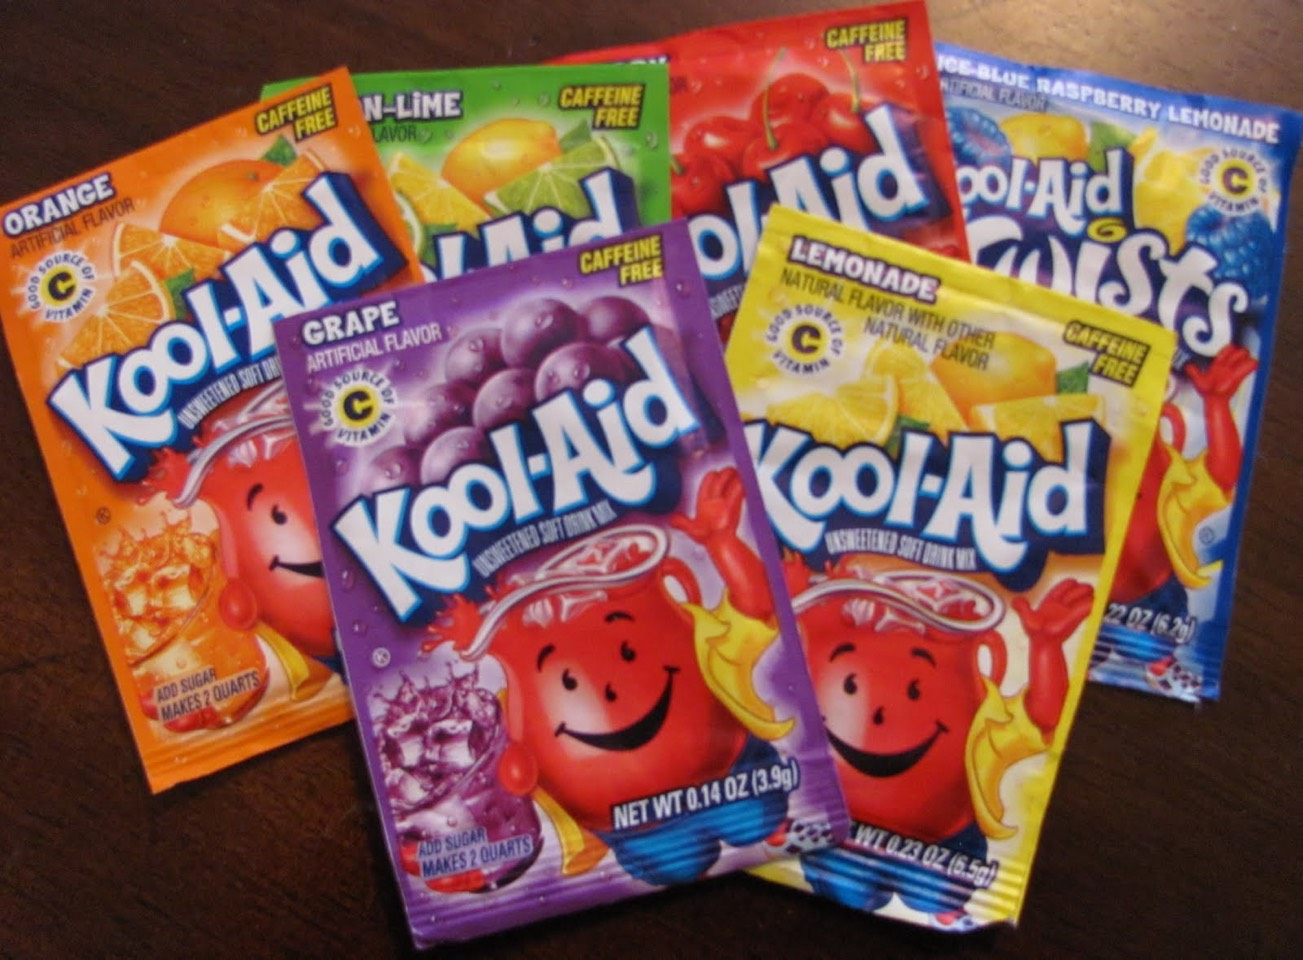 At least get two packs of kool aid